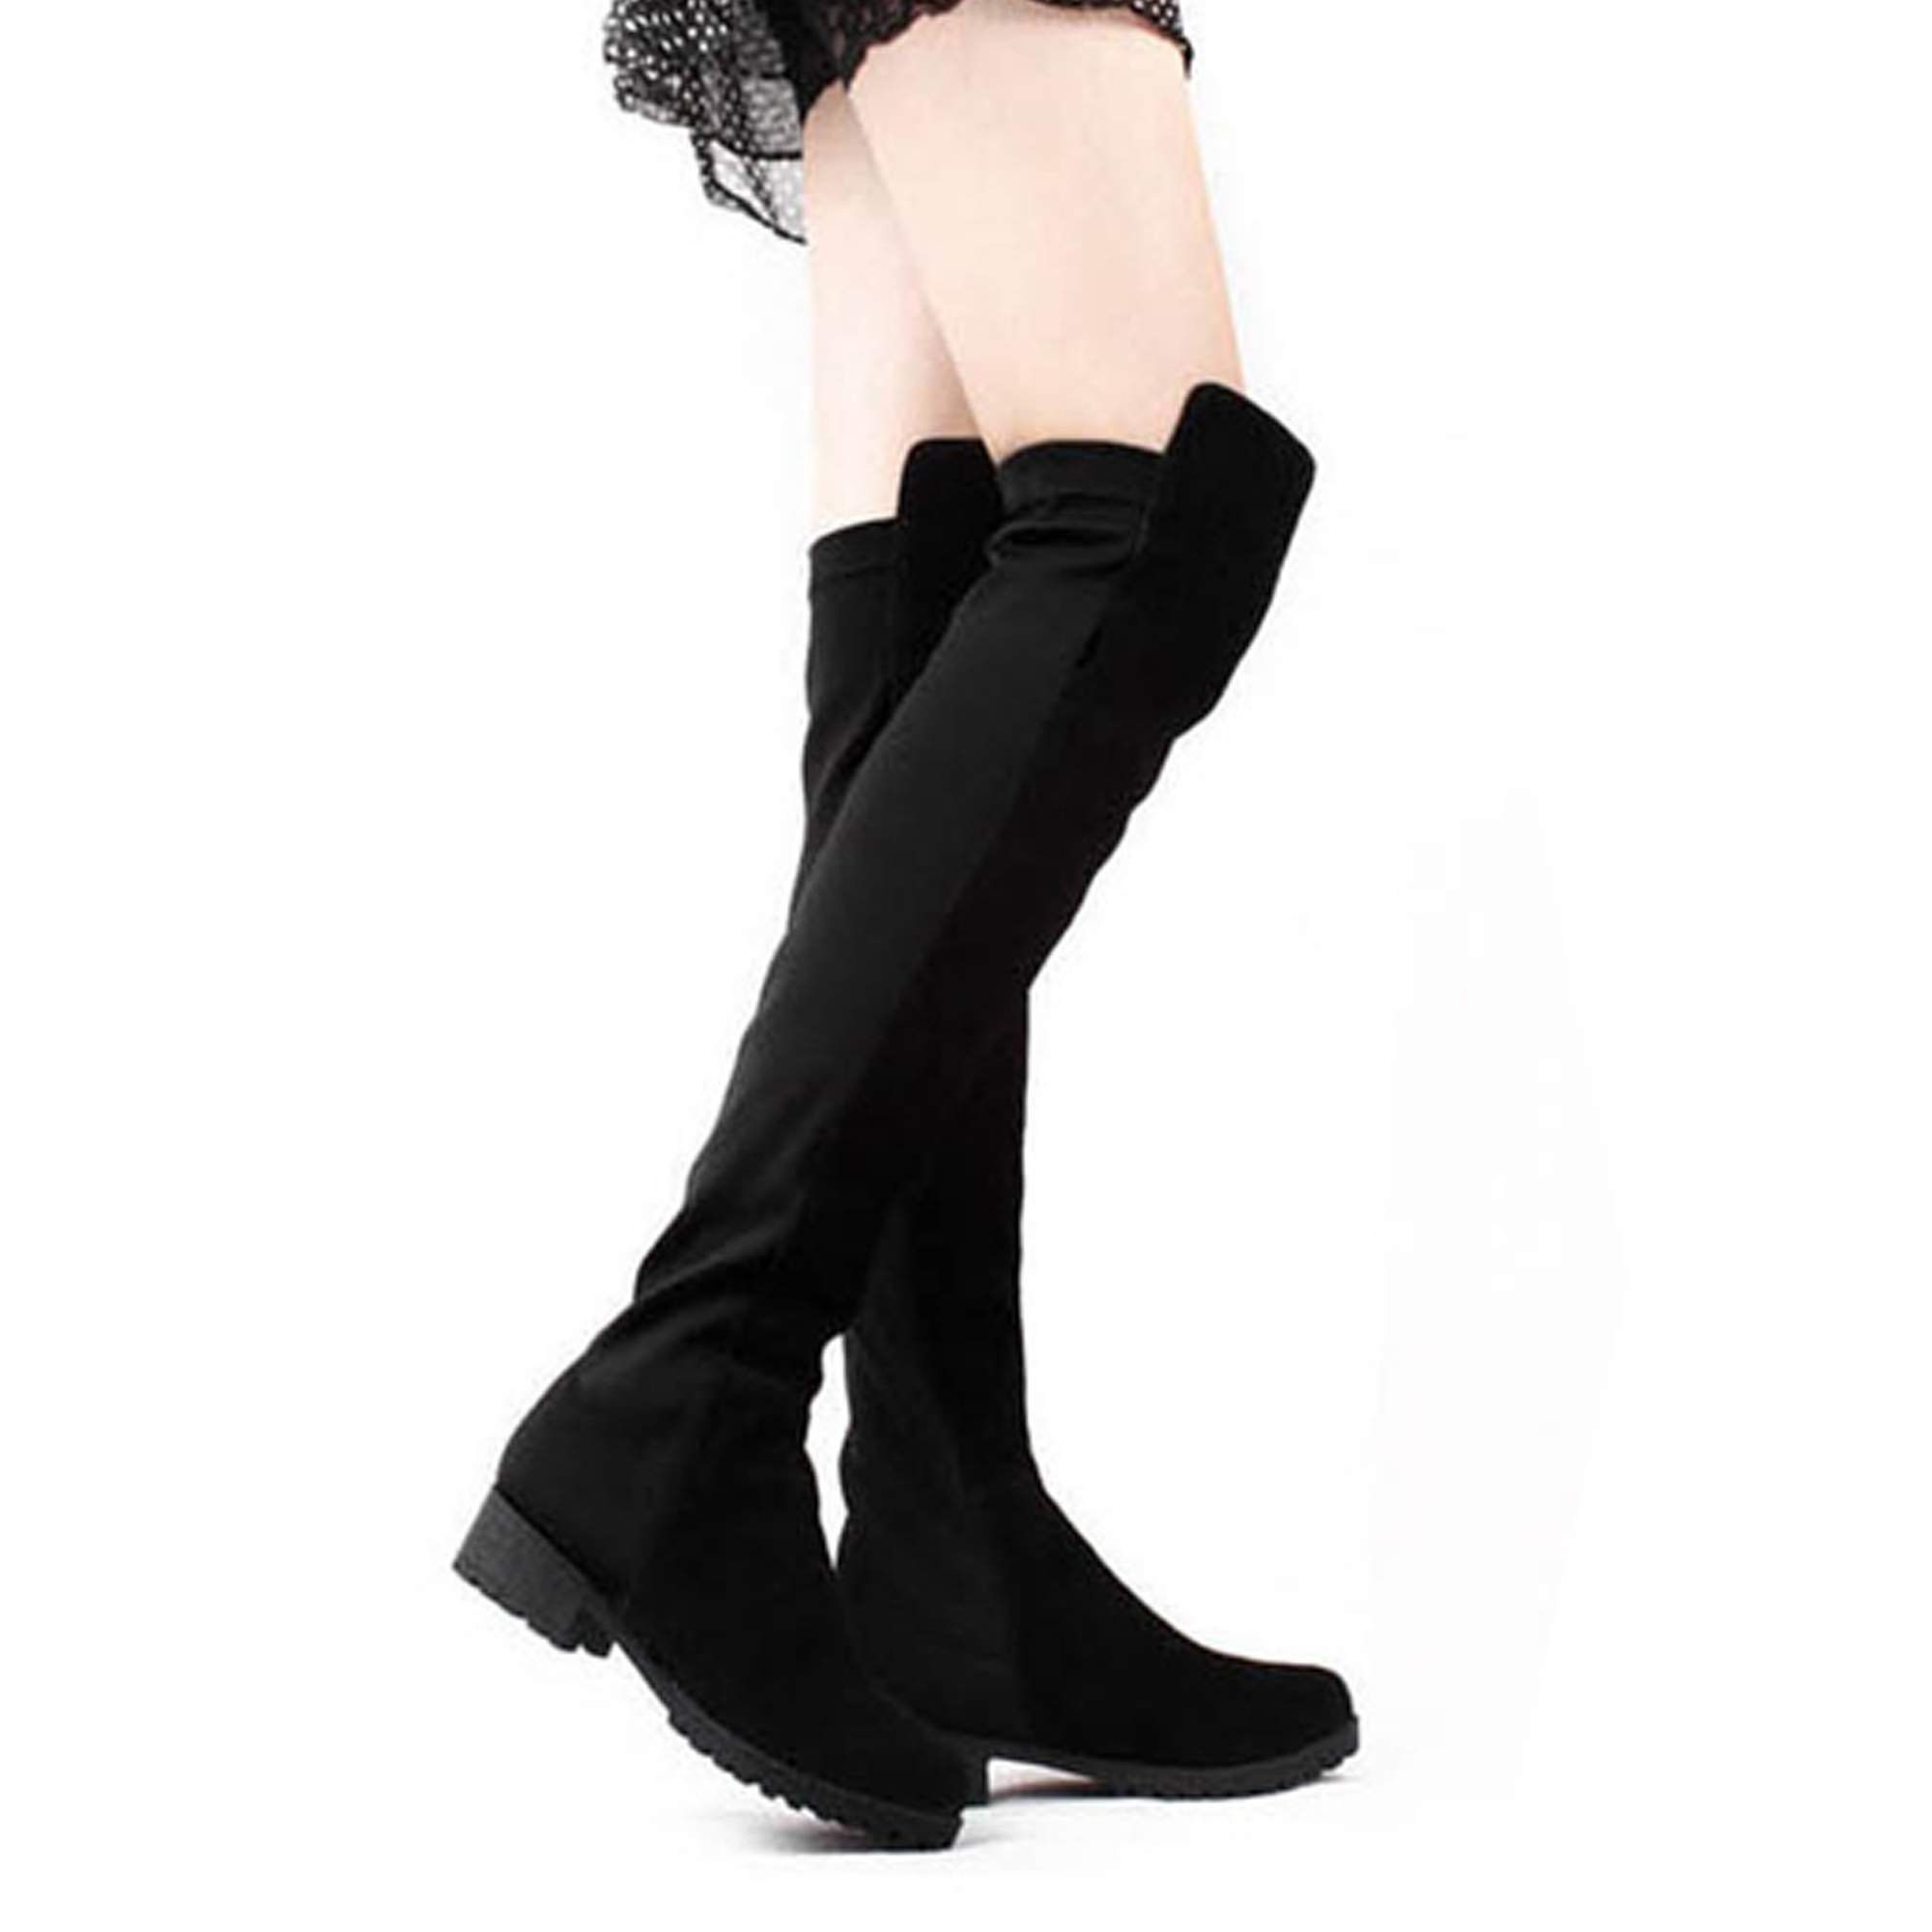 08a655b165636 Amazon.com: Zeagoo Black Fashion Women's Shoes Over the knee Faux ...